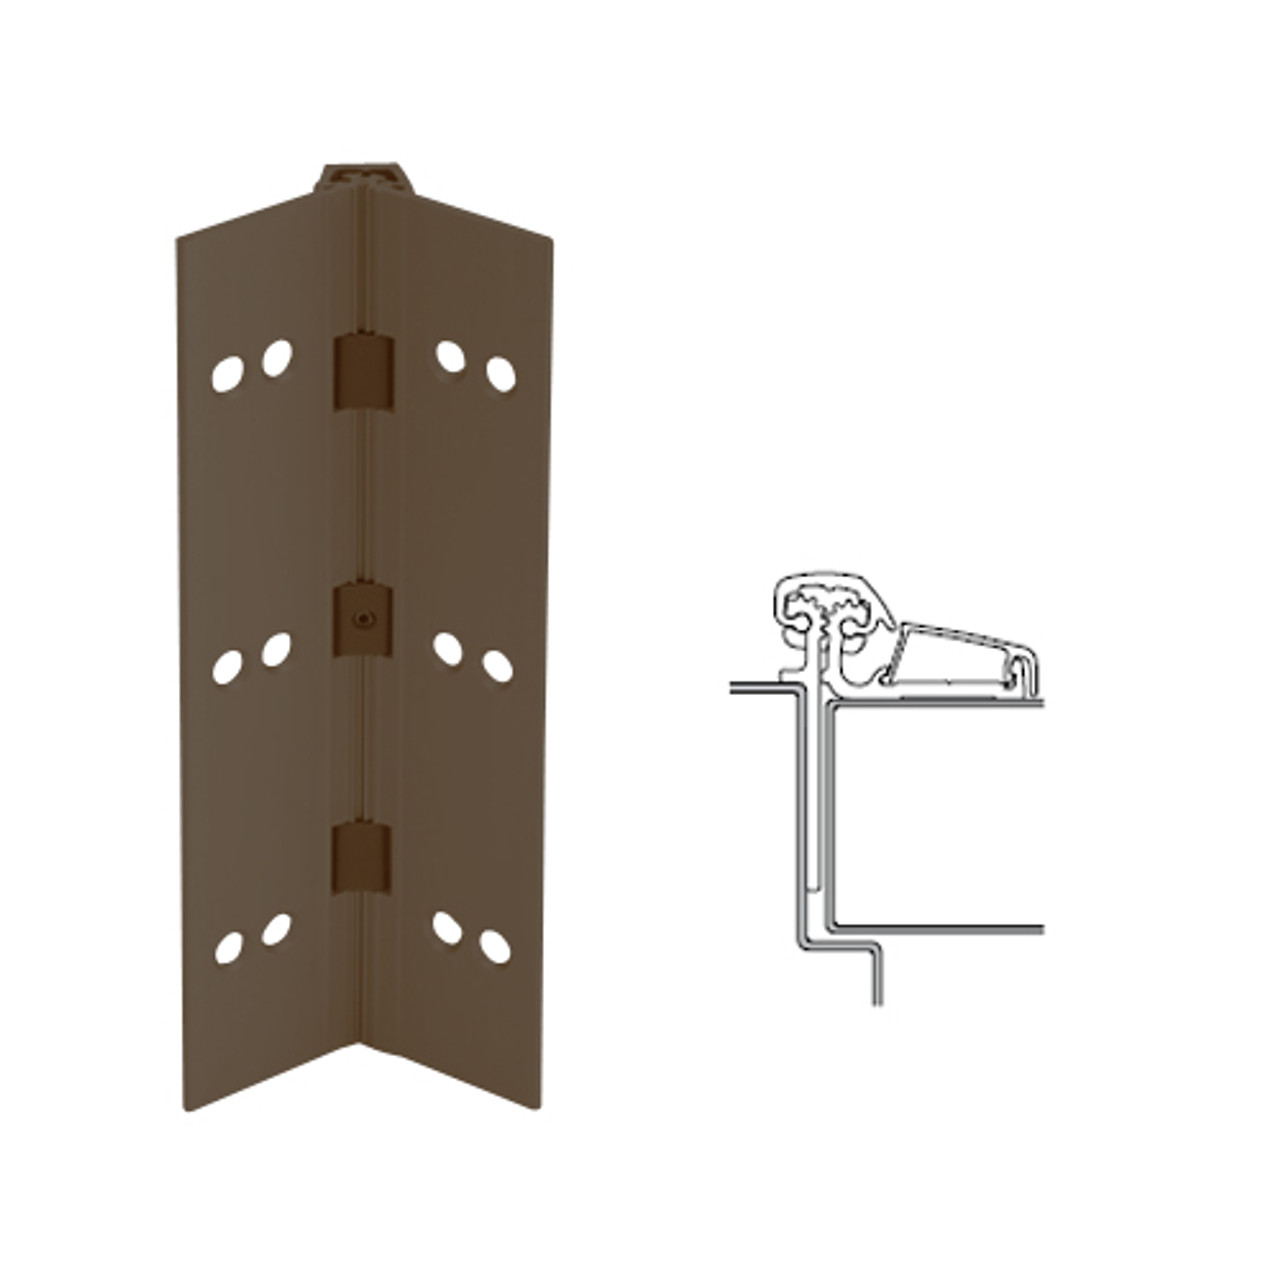 053XY-313AN-95-WD IVES Adjustable Half Surface Continuous Geared Hinges with Wood Screws in Dark Bronze Anodized